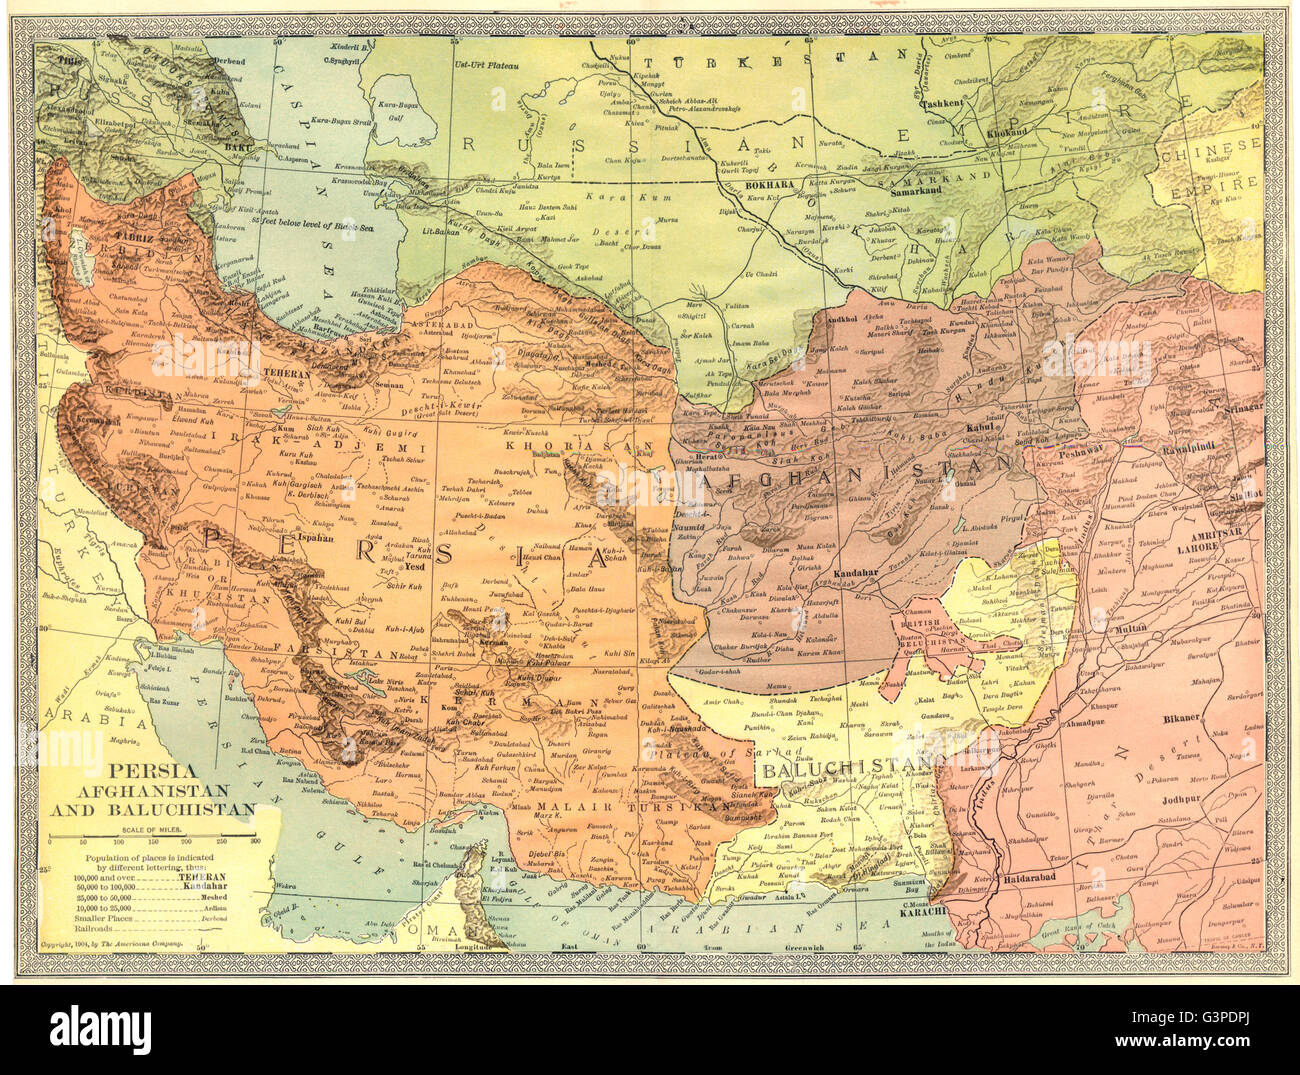 Southwest Asia Persia Afghanistan And Baluchistan Pakistan Iran – Afghanistan Iran Map